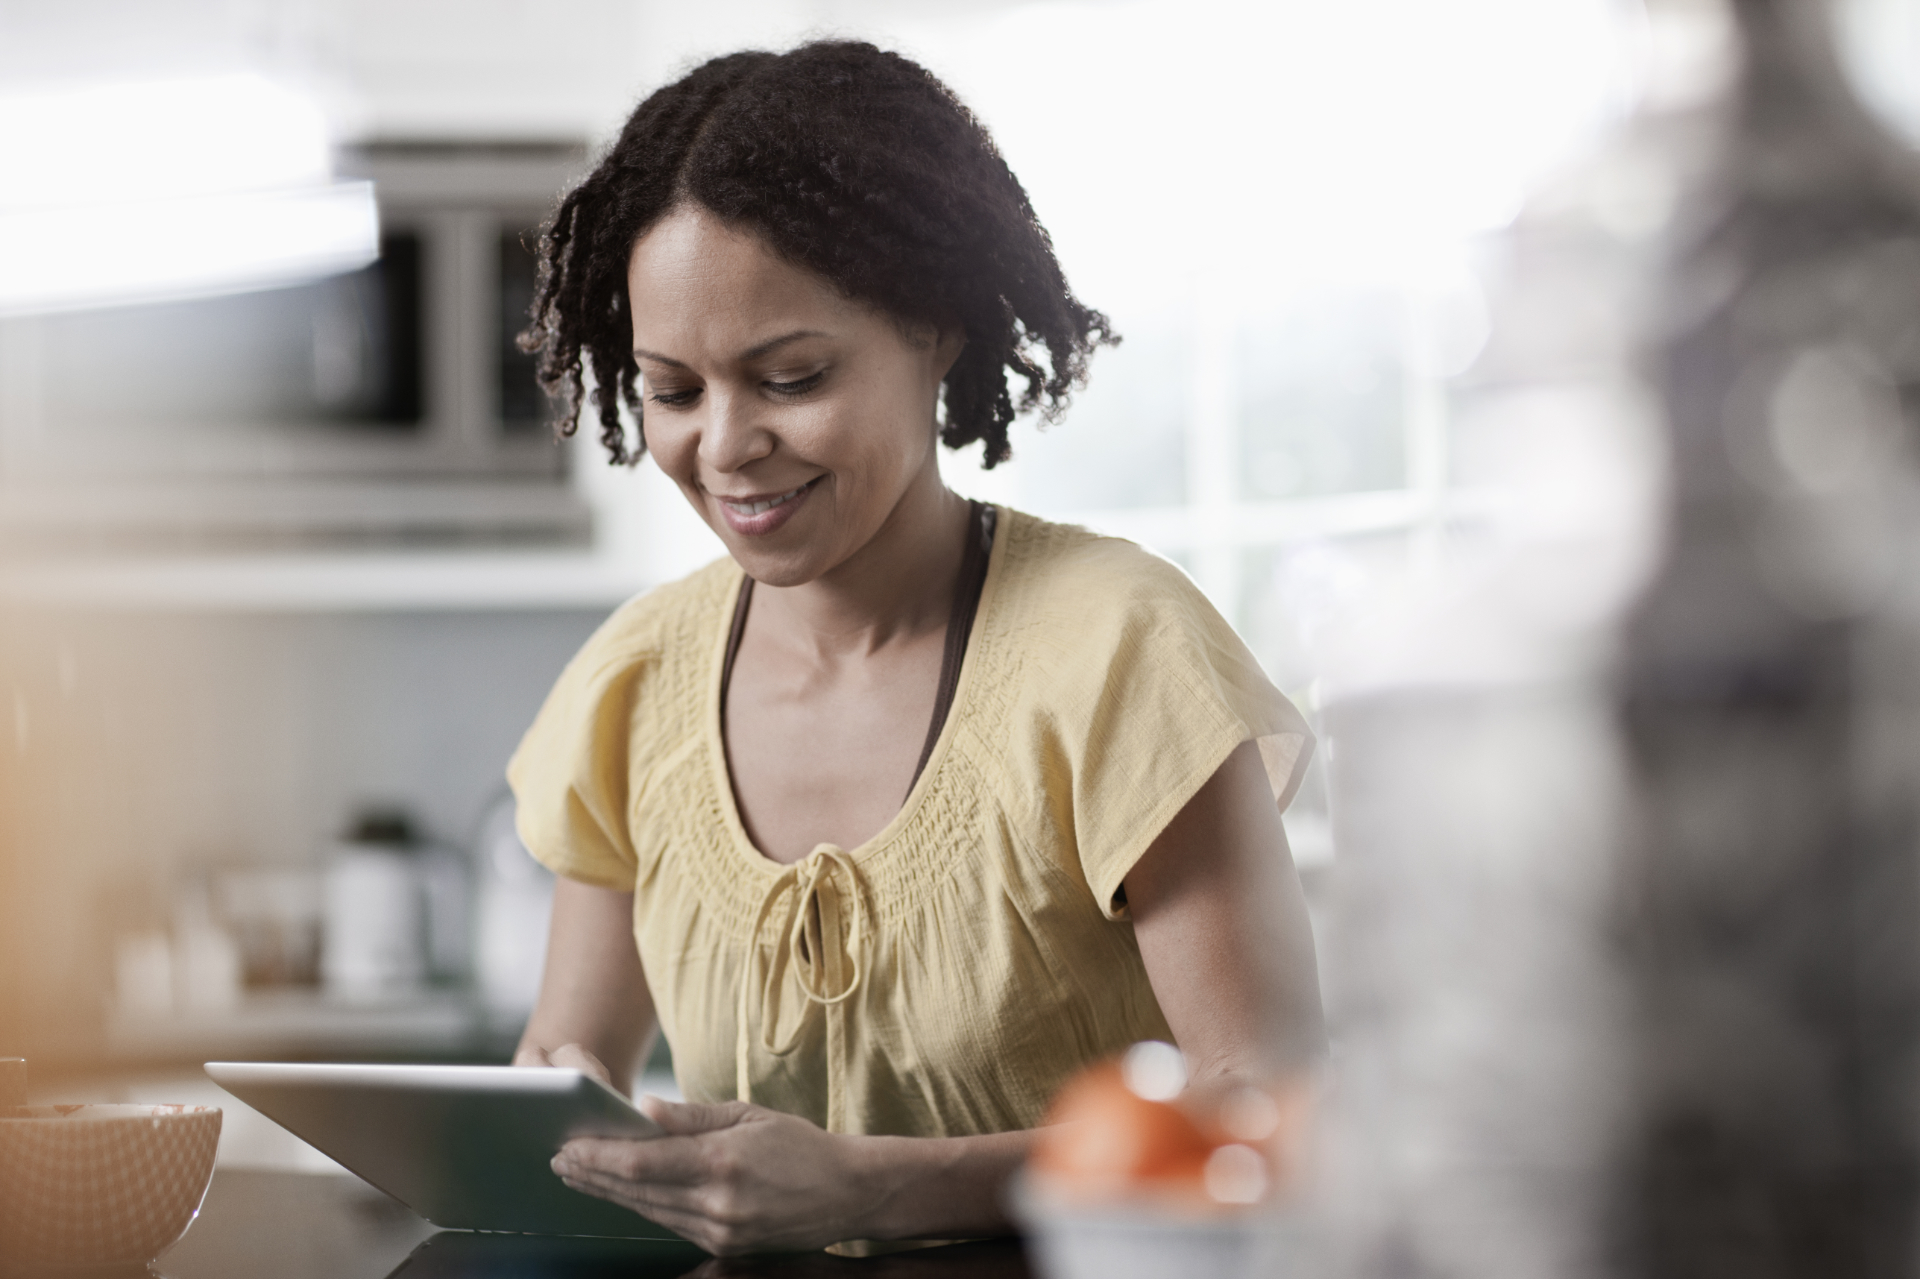 A woman using a digital tablet in her home. Standing in the kitchen.